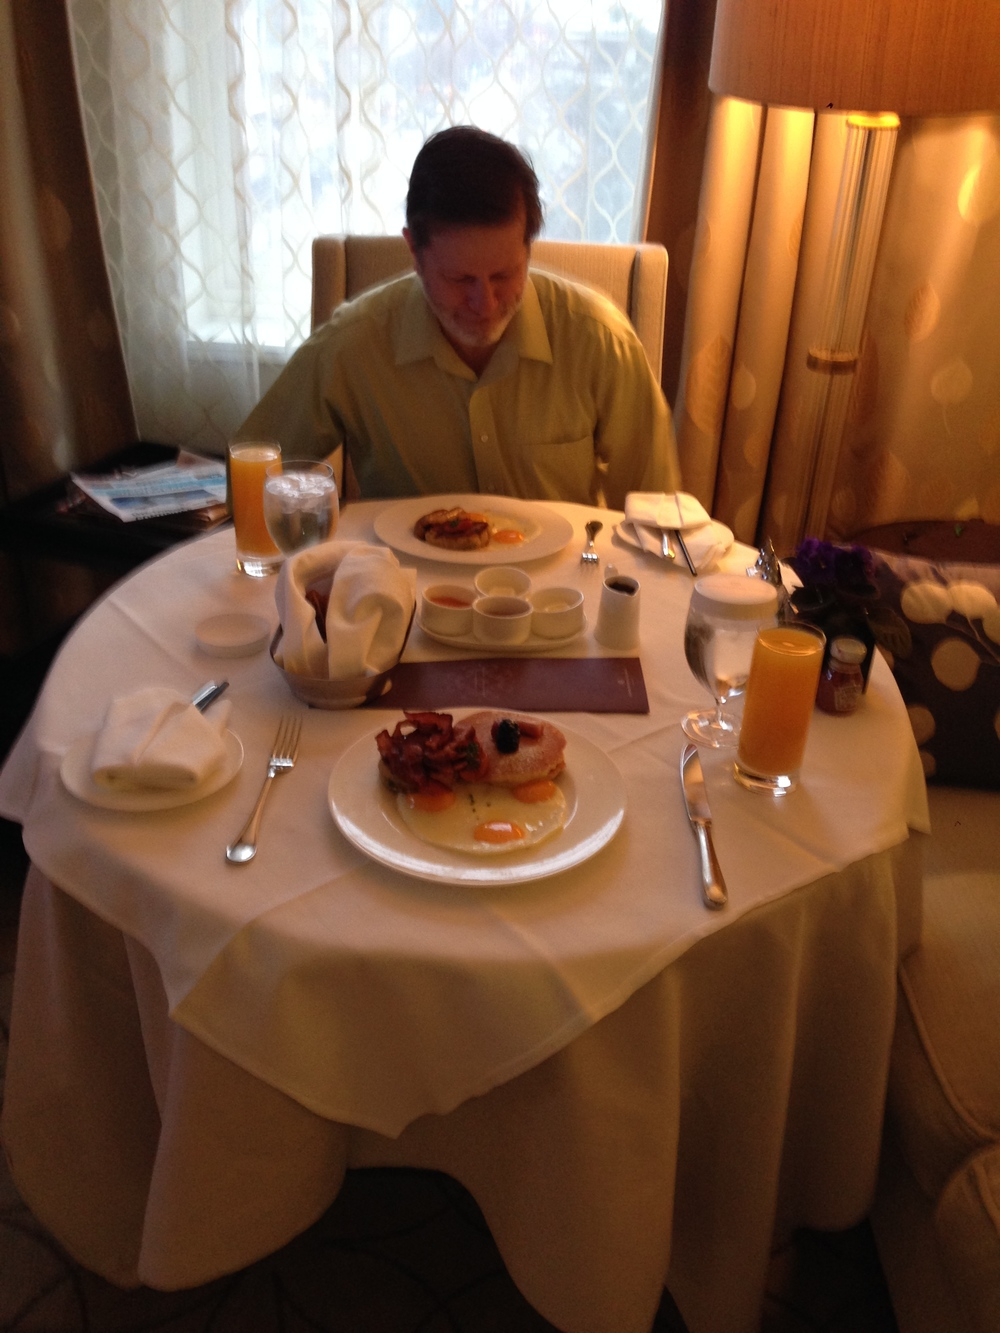 Room service for breakfast! YUM!